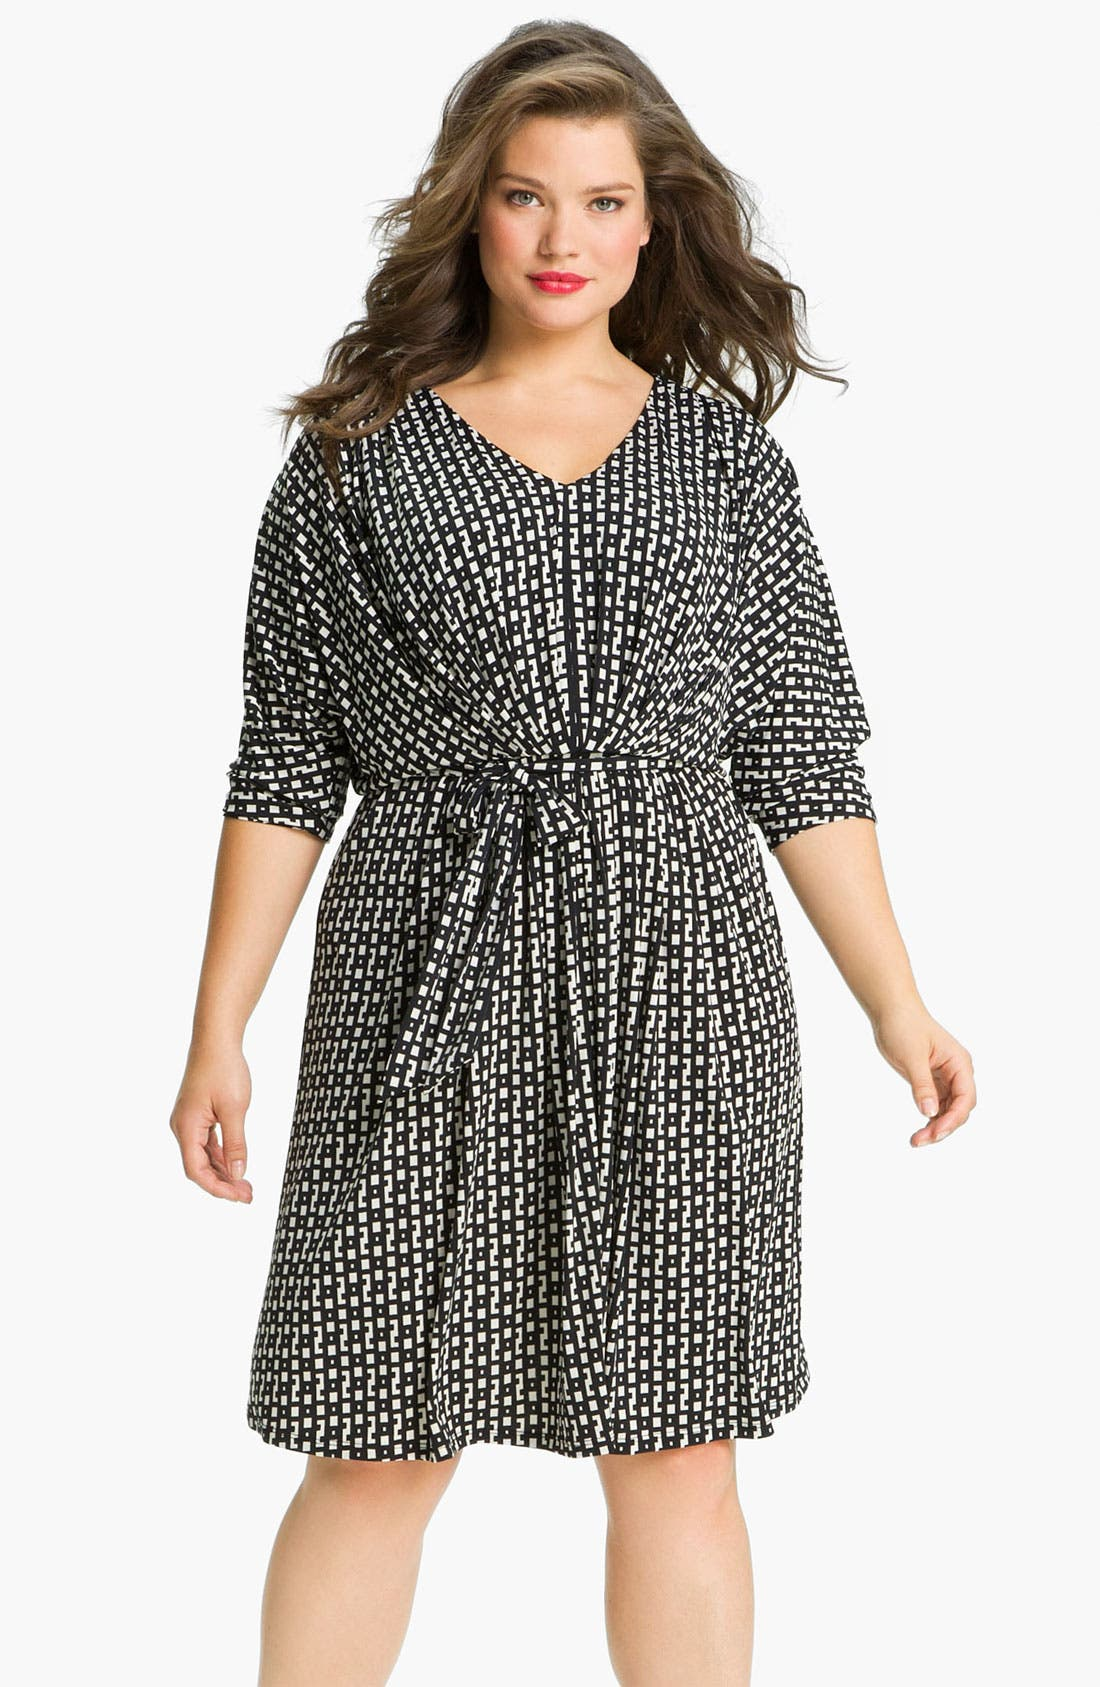 Alternate Image 1 Selected - Suzi Chin for Maggy Boutique Dolman Sleeve V-Neck Dress (Plus)